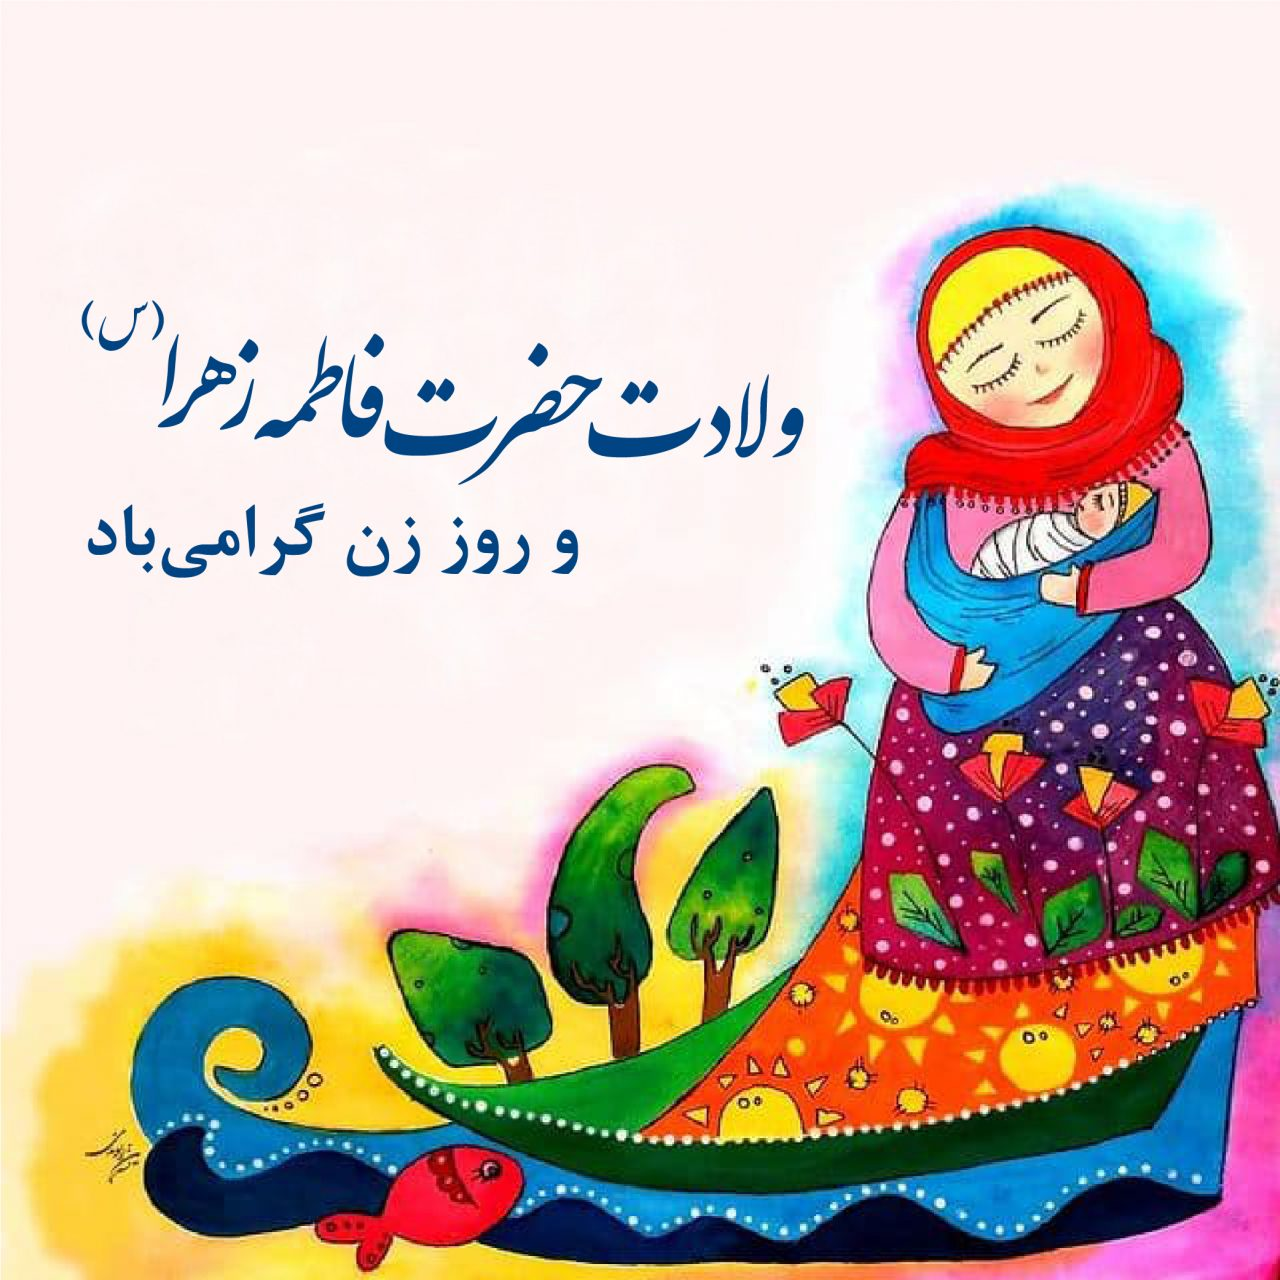 https://hakimanteb.com/wp-content/uploads/2021/02/mother-day-15-11-99-post-01-1280x1280.jpg